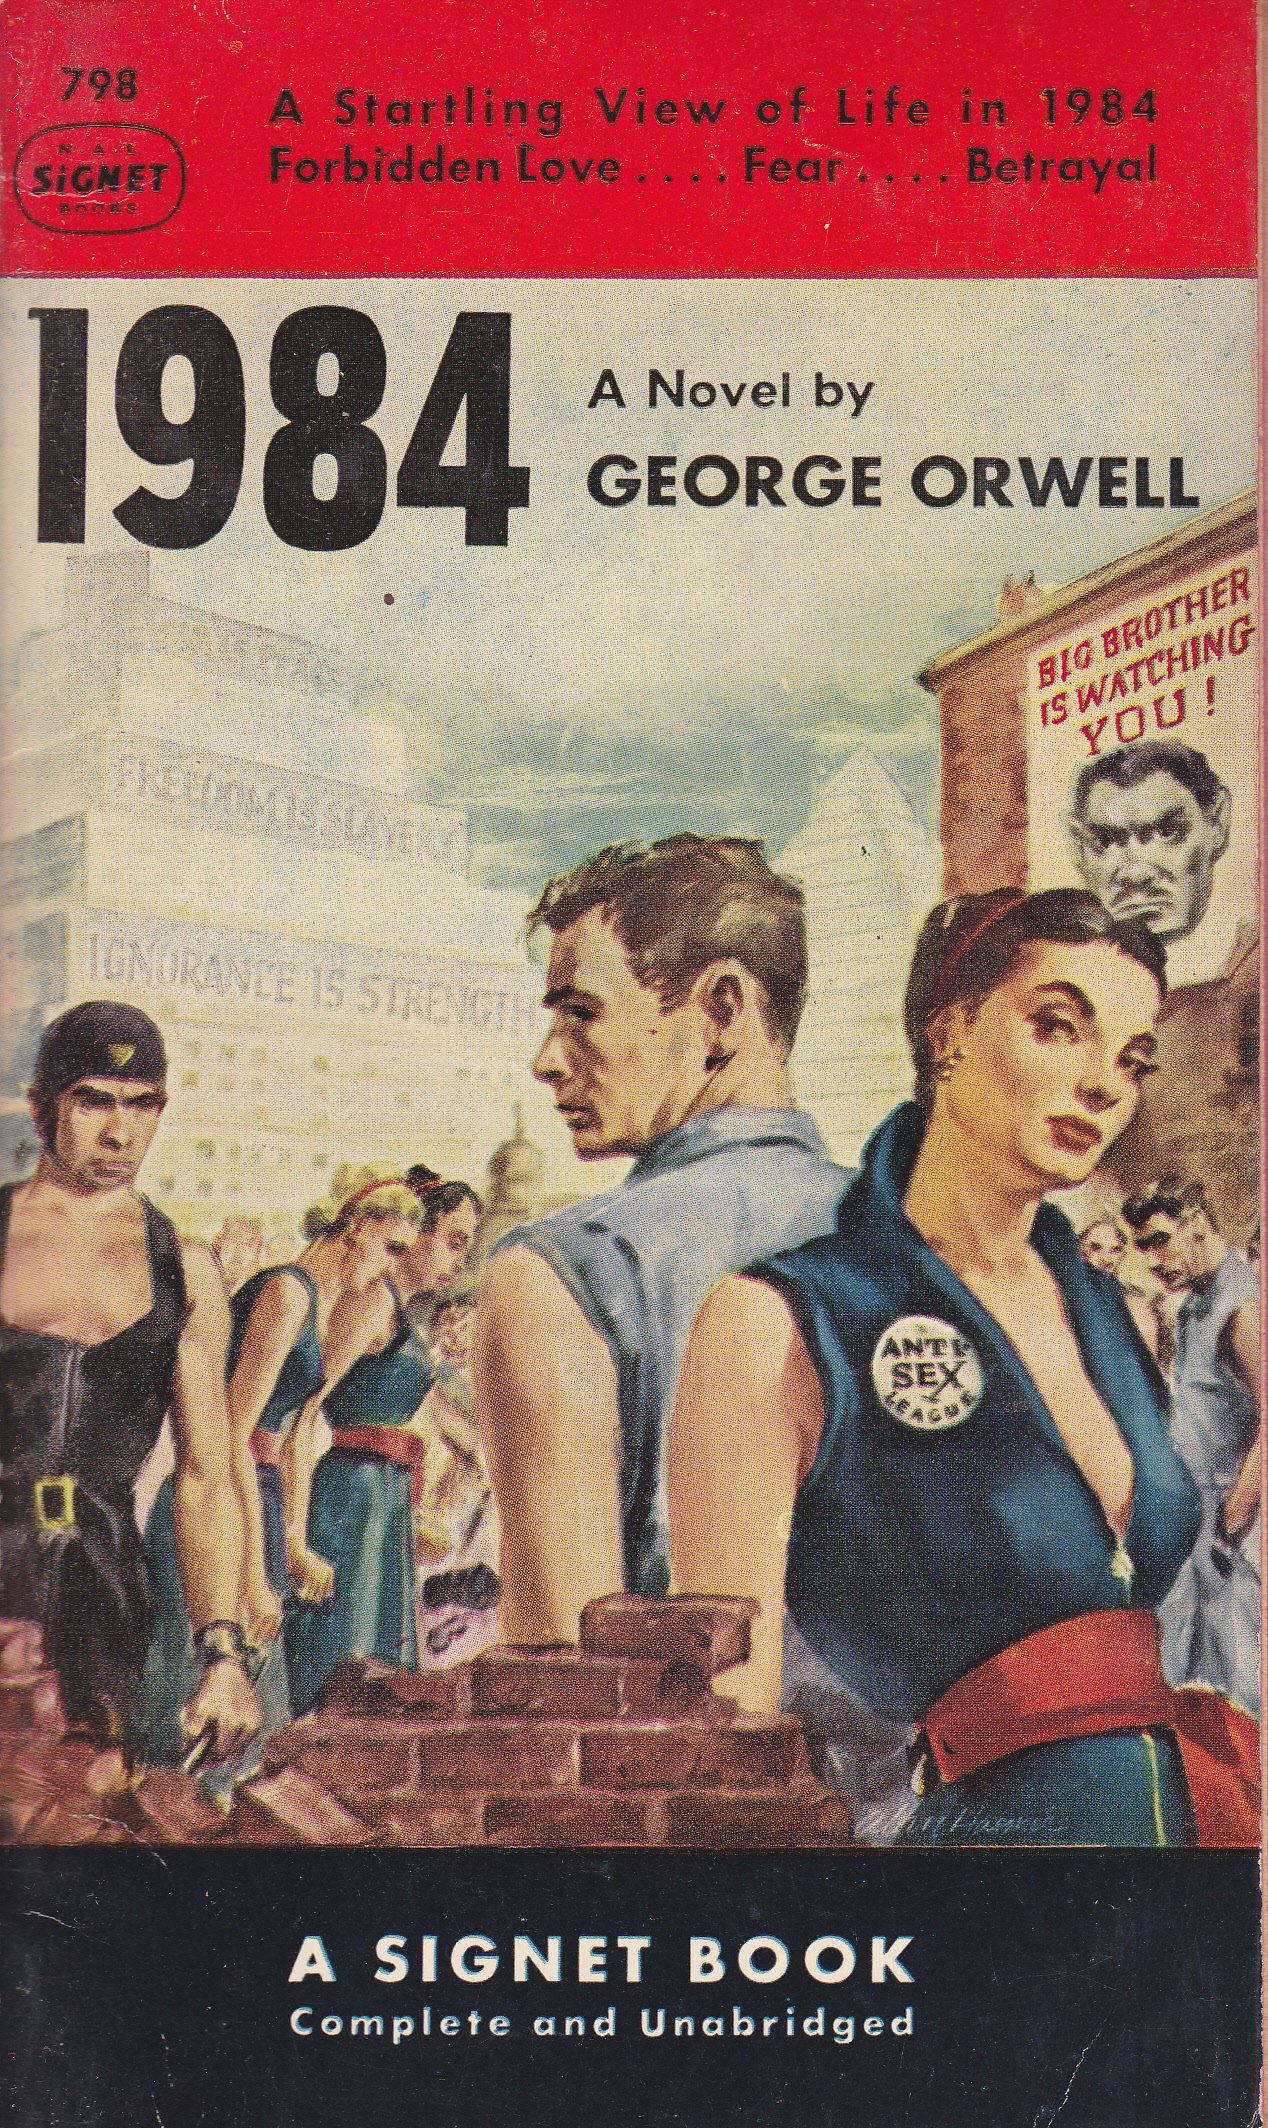 George Orwell predicted      almost    years ago An edition of        by George Orwell  right  is displayed among other